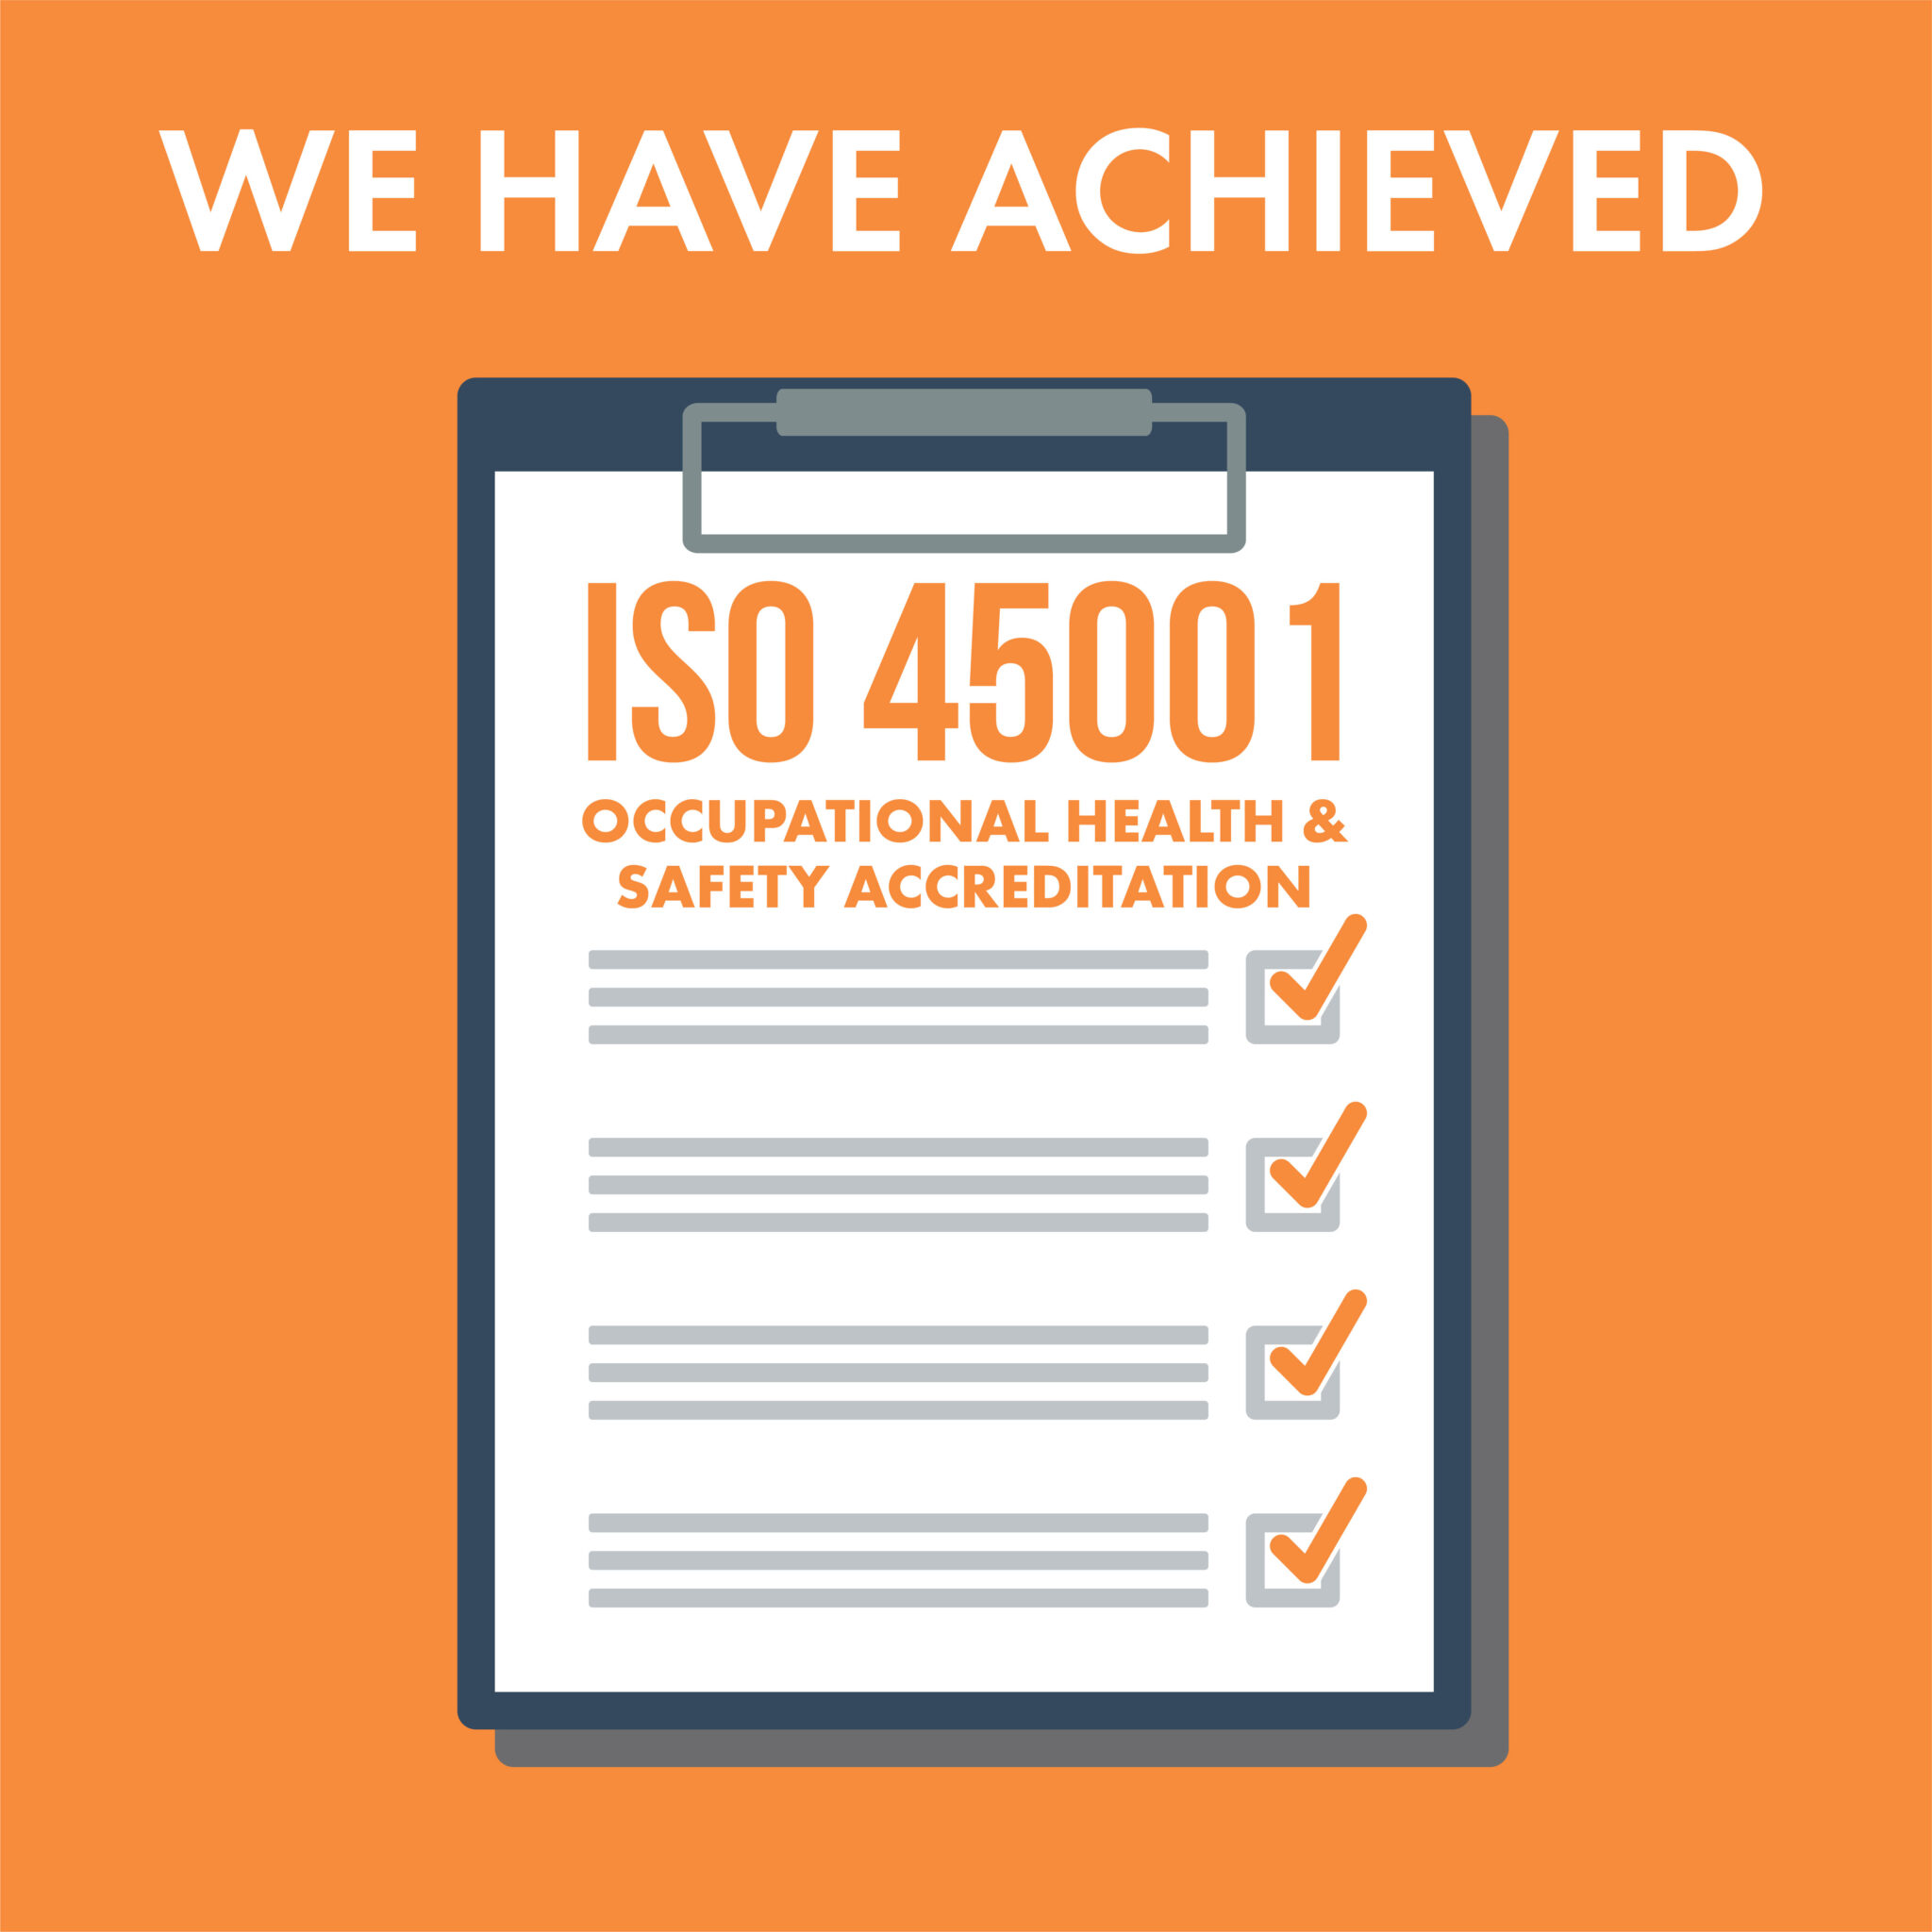 Successful migration to ISO45001 achieved